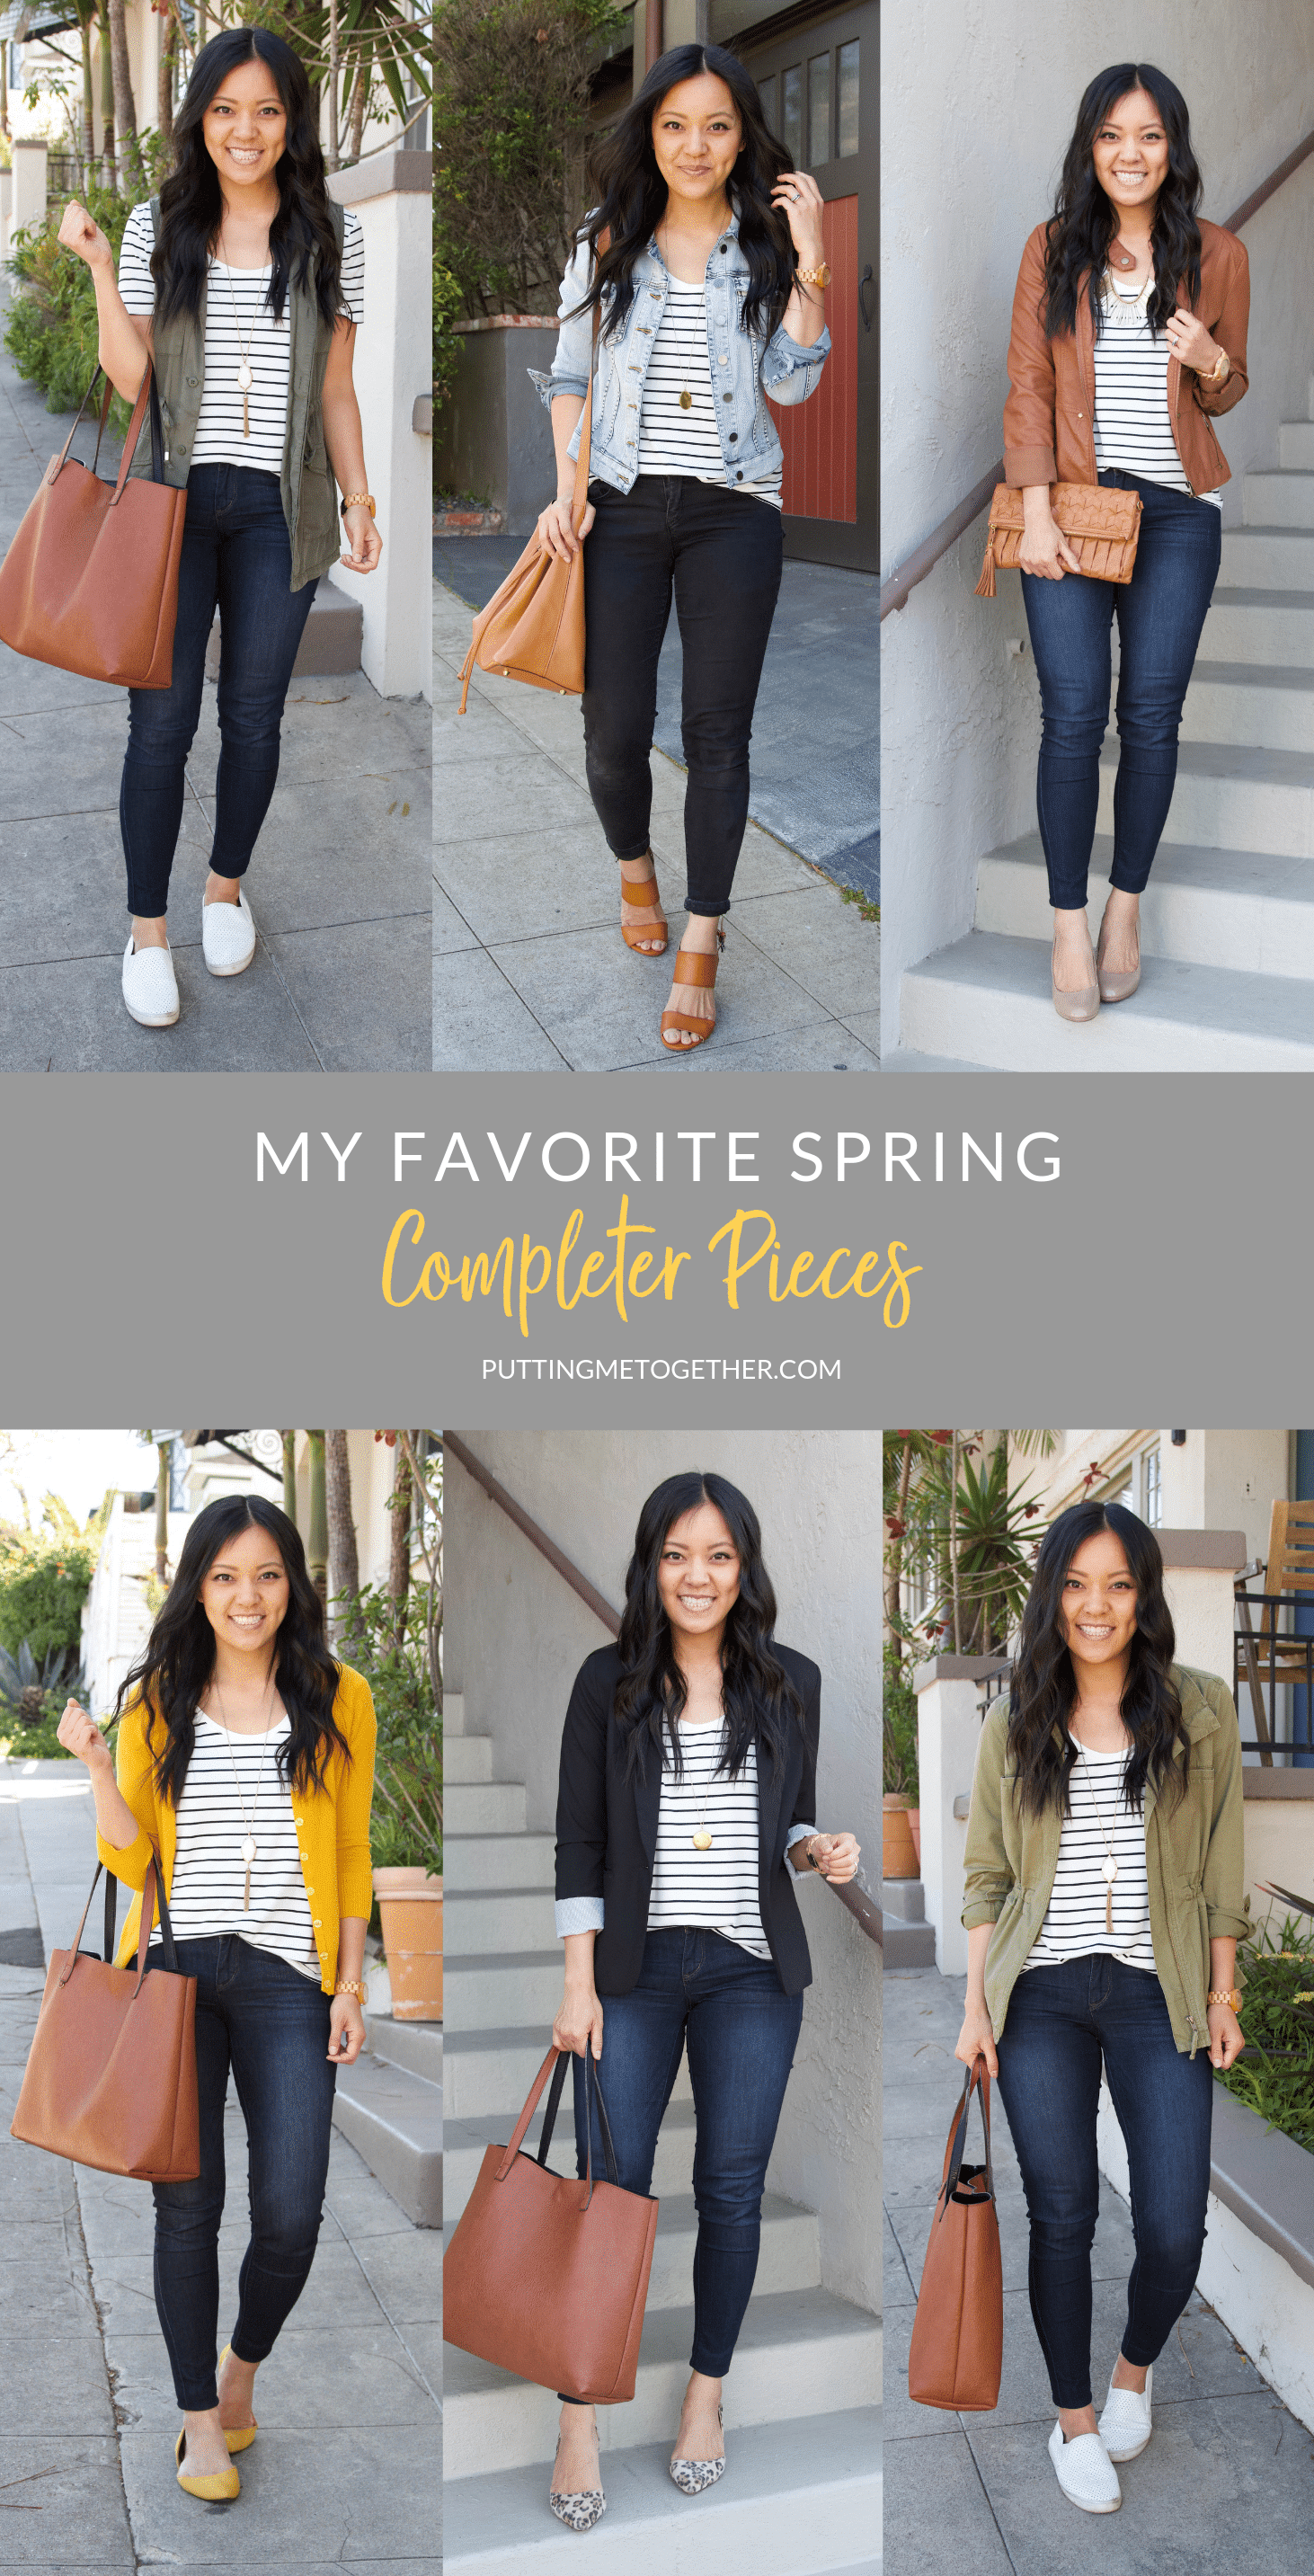 My favorite Spring Completer Pieces